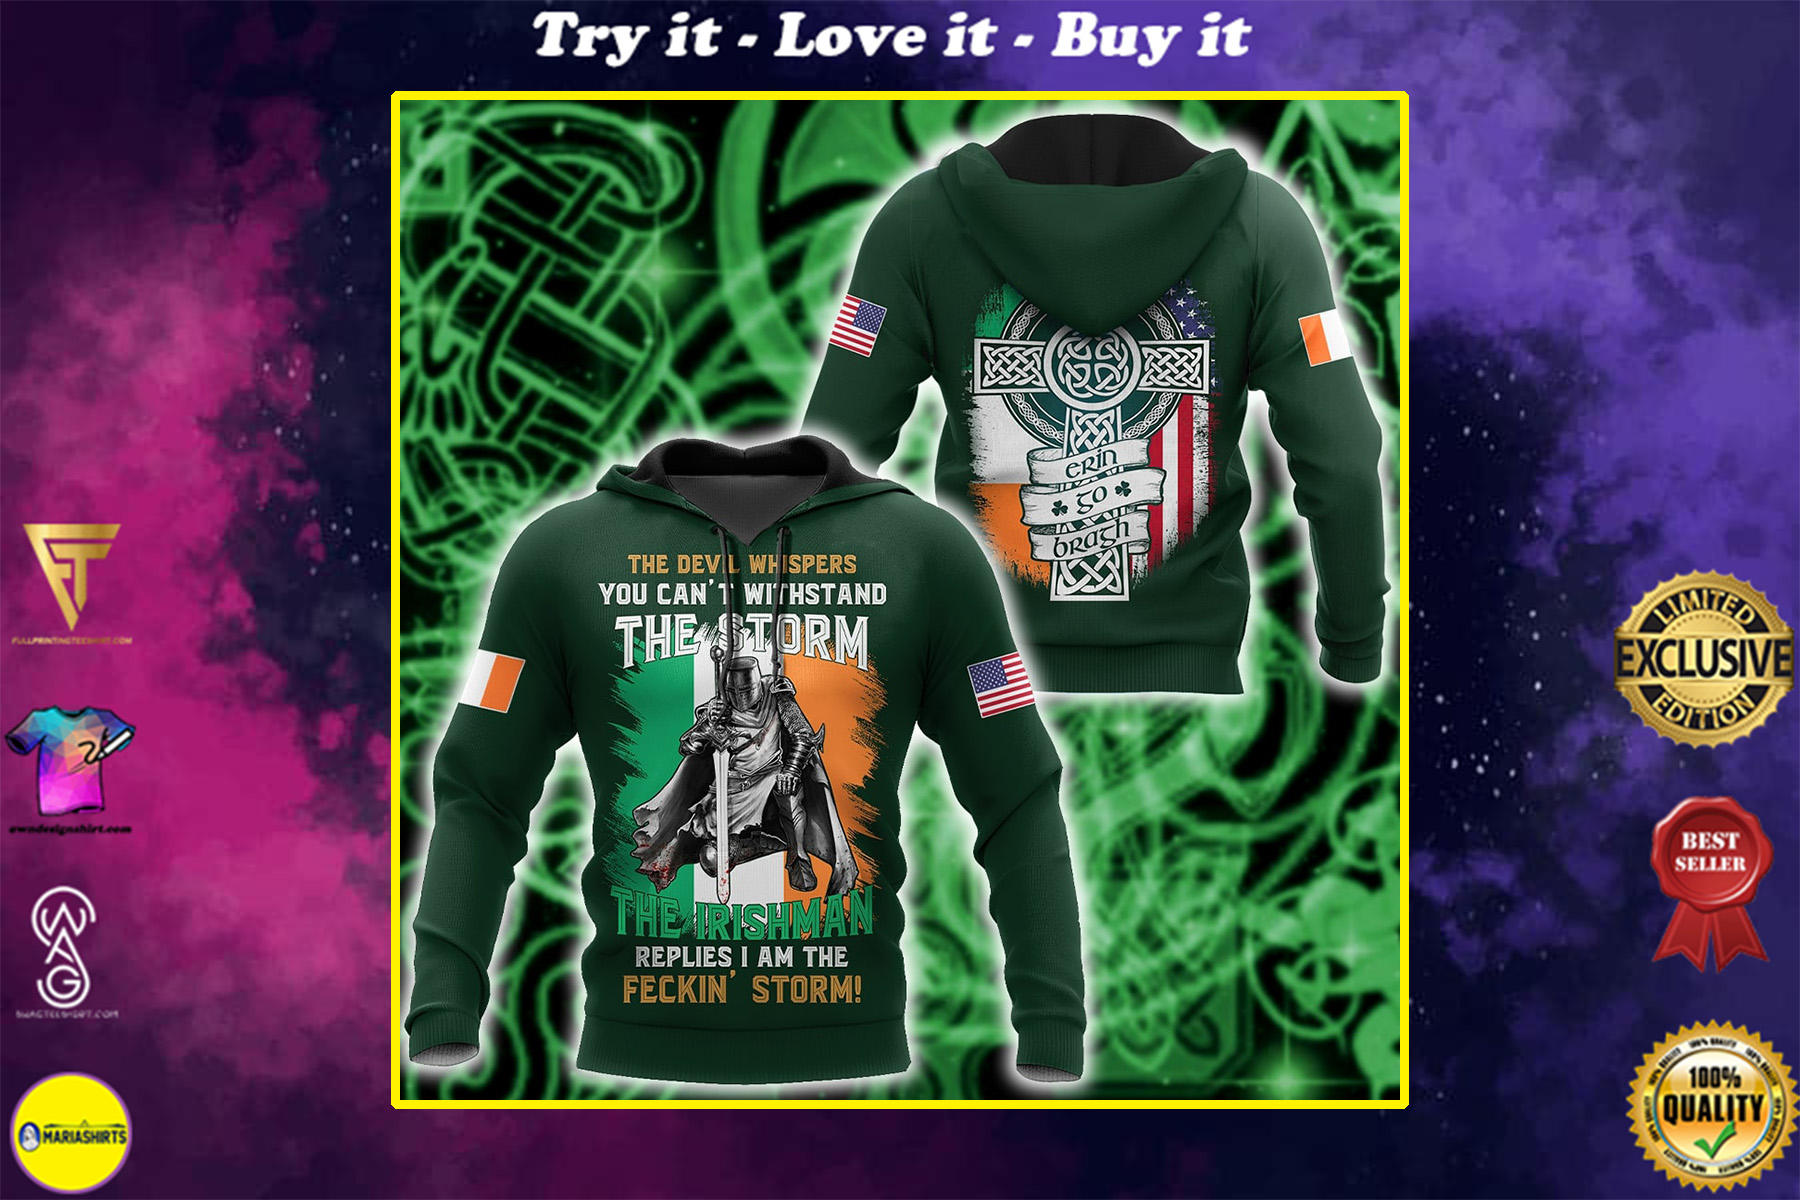 the devil whispers you can't withstand the storm the irishman replies i am the feckin storm shirt